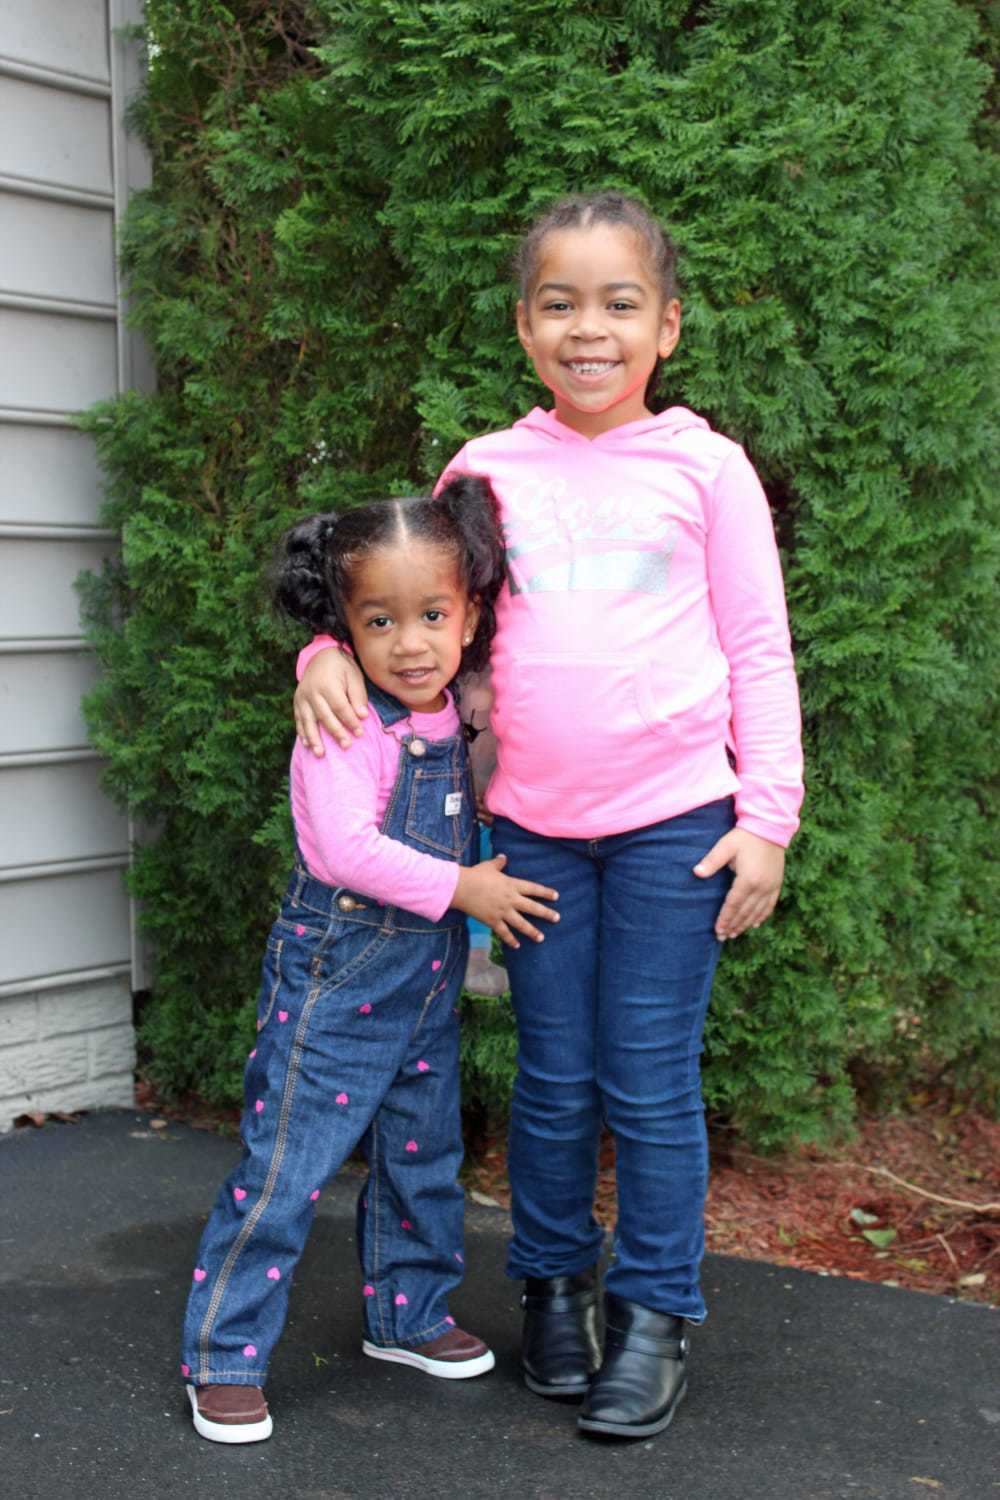 Girls in Pink and denim